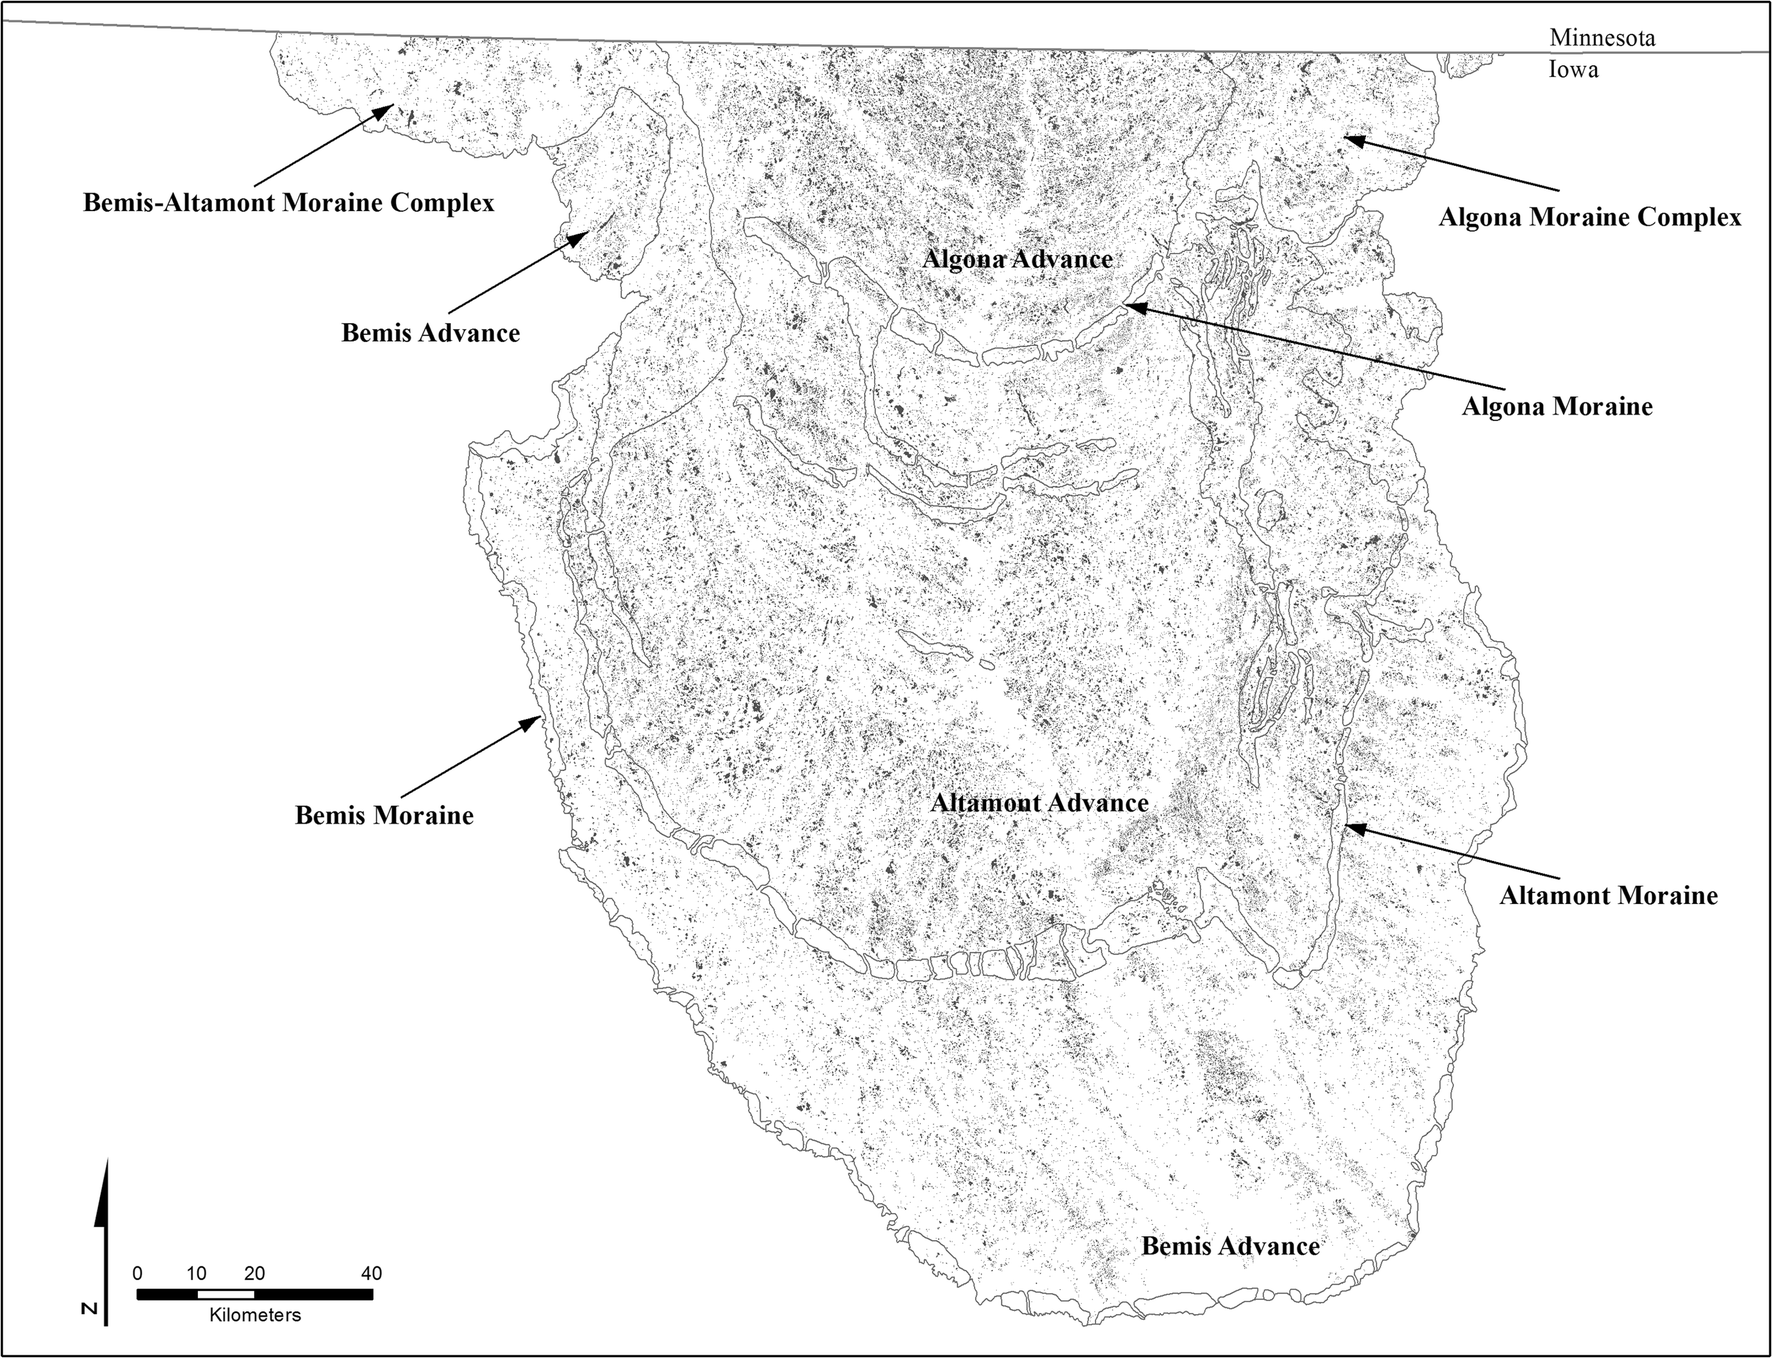 Morphology of Drained Upland Depressions on the Des Moines